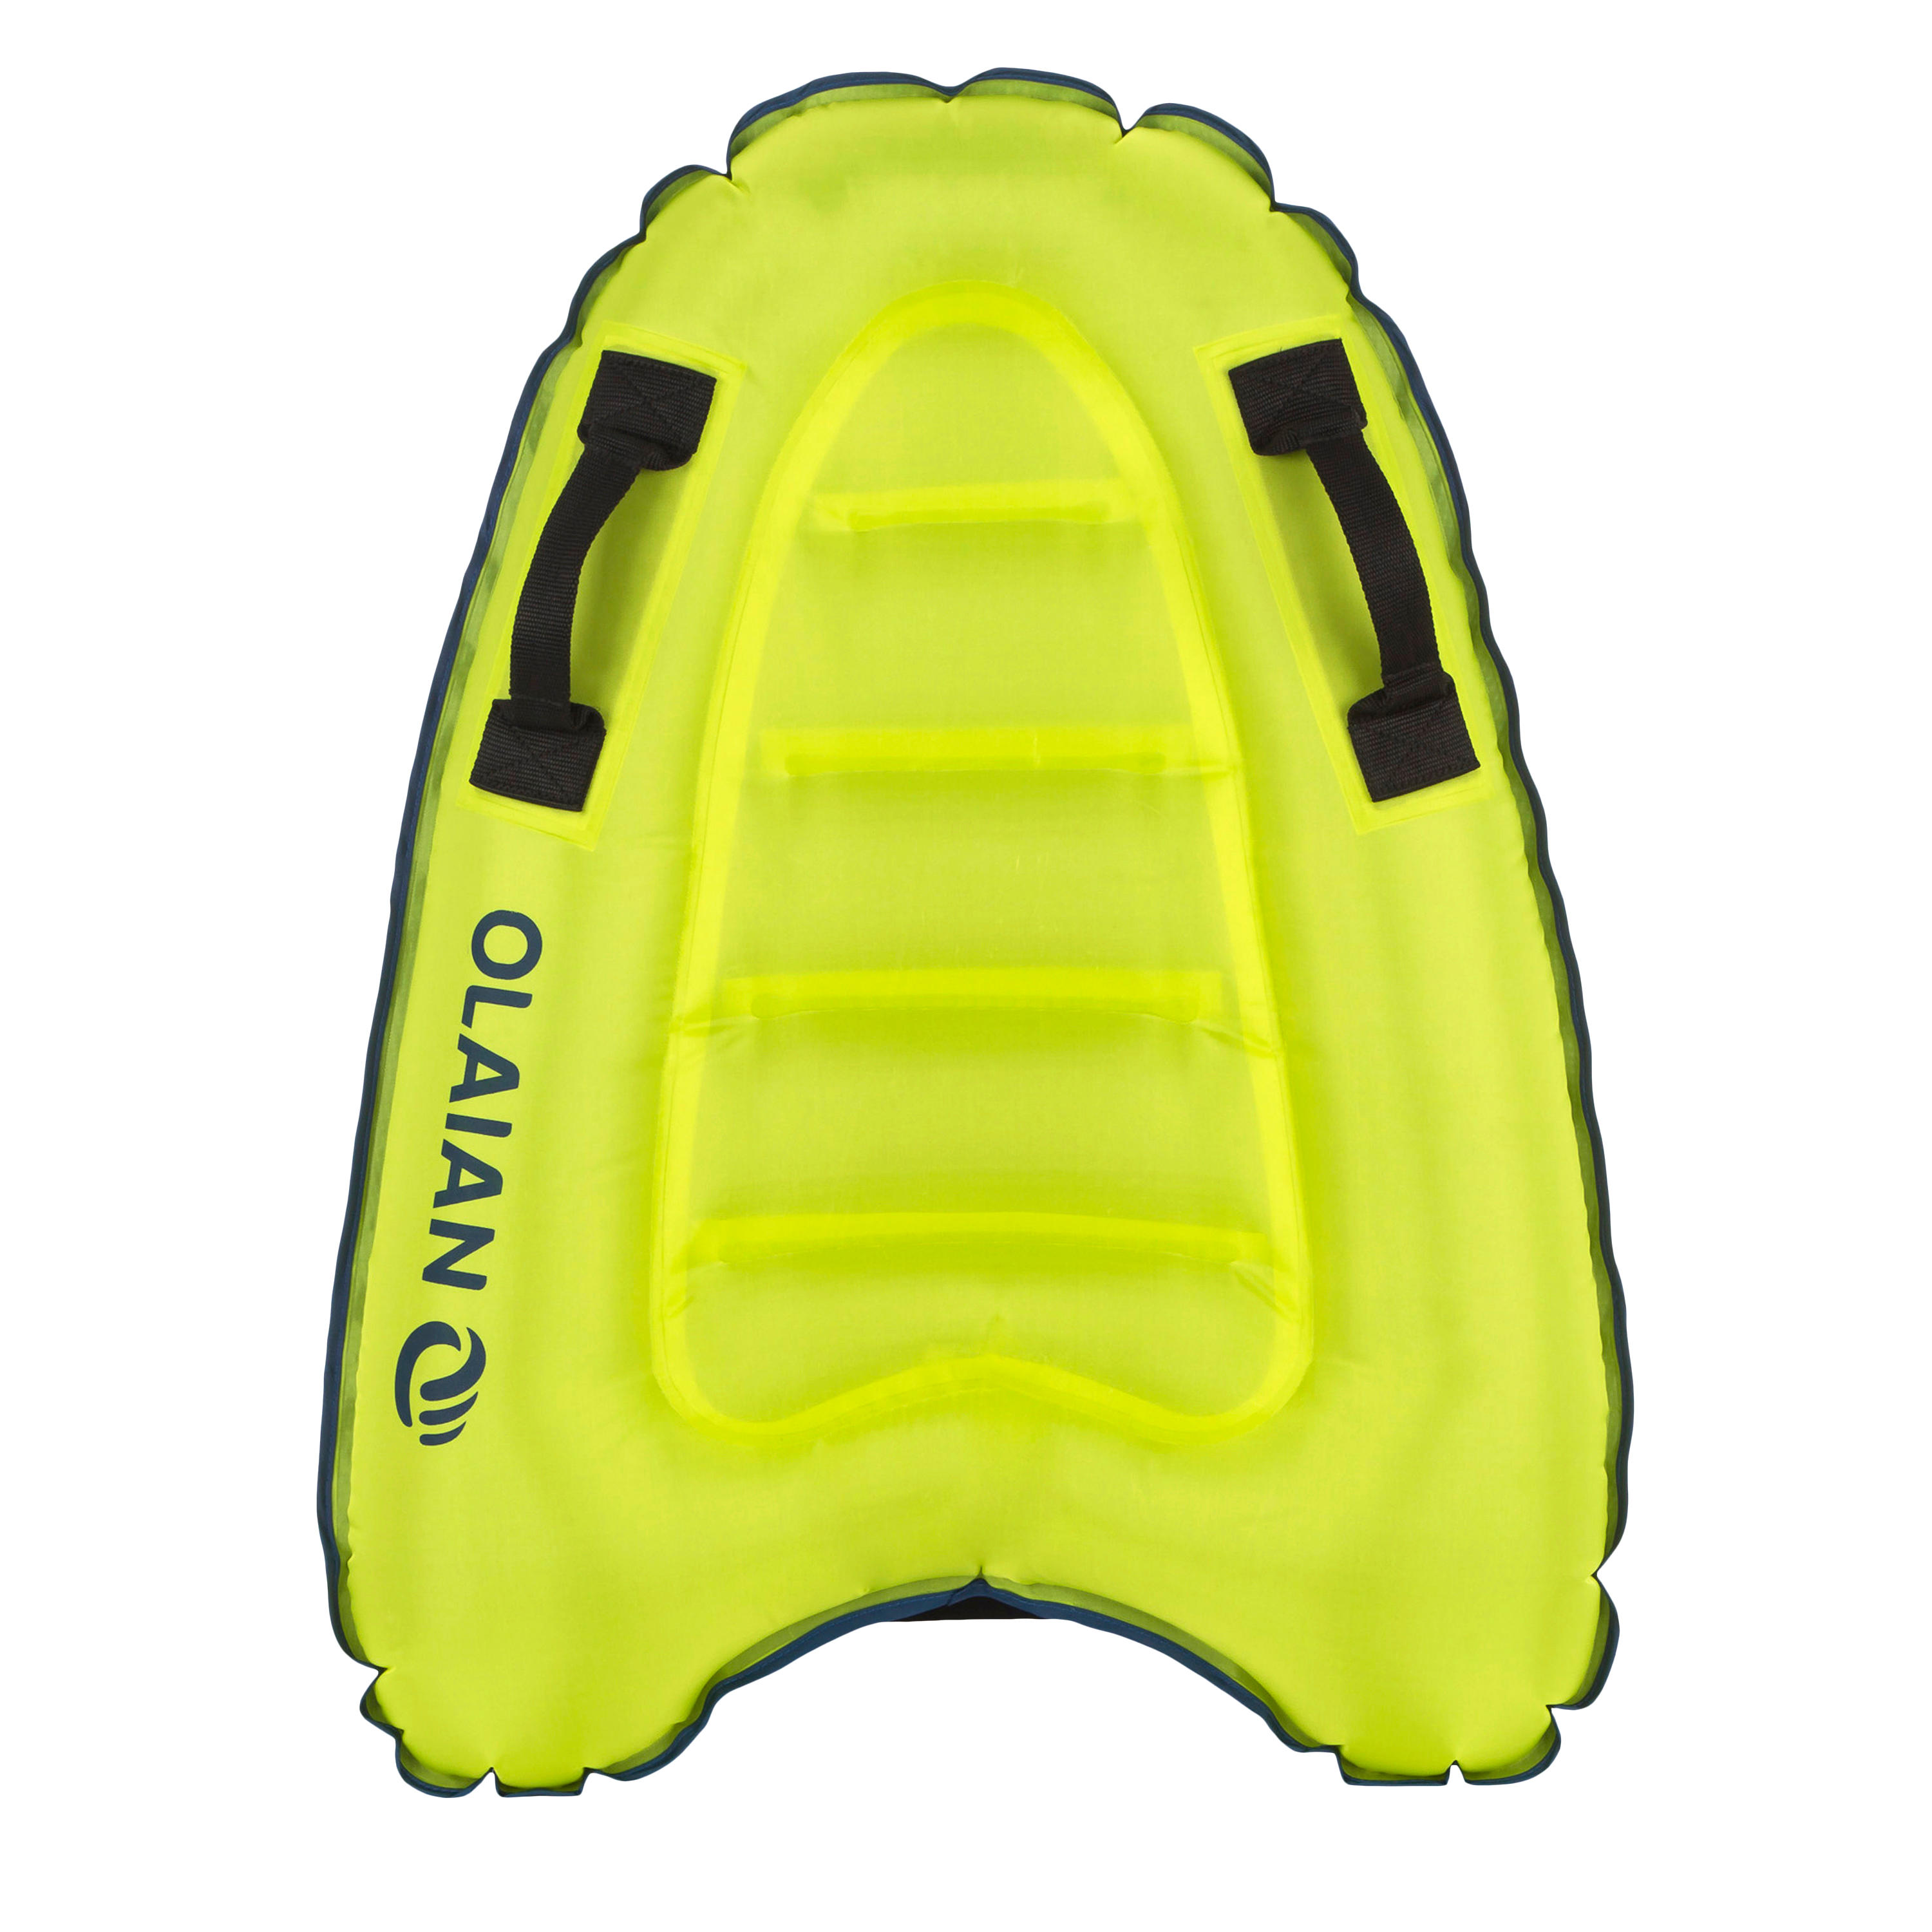 Bodyboard gonflable...